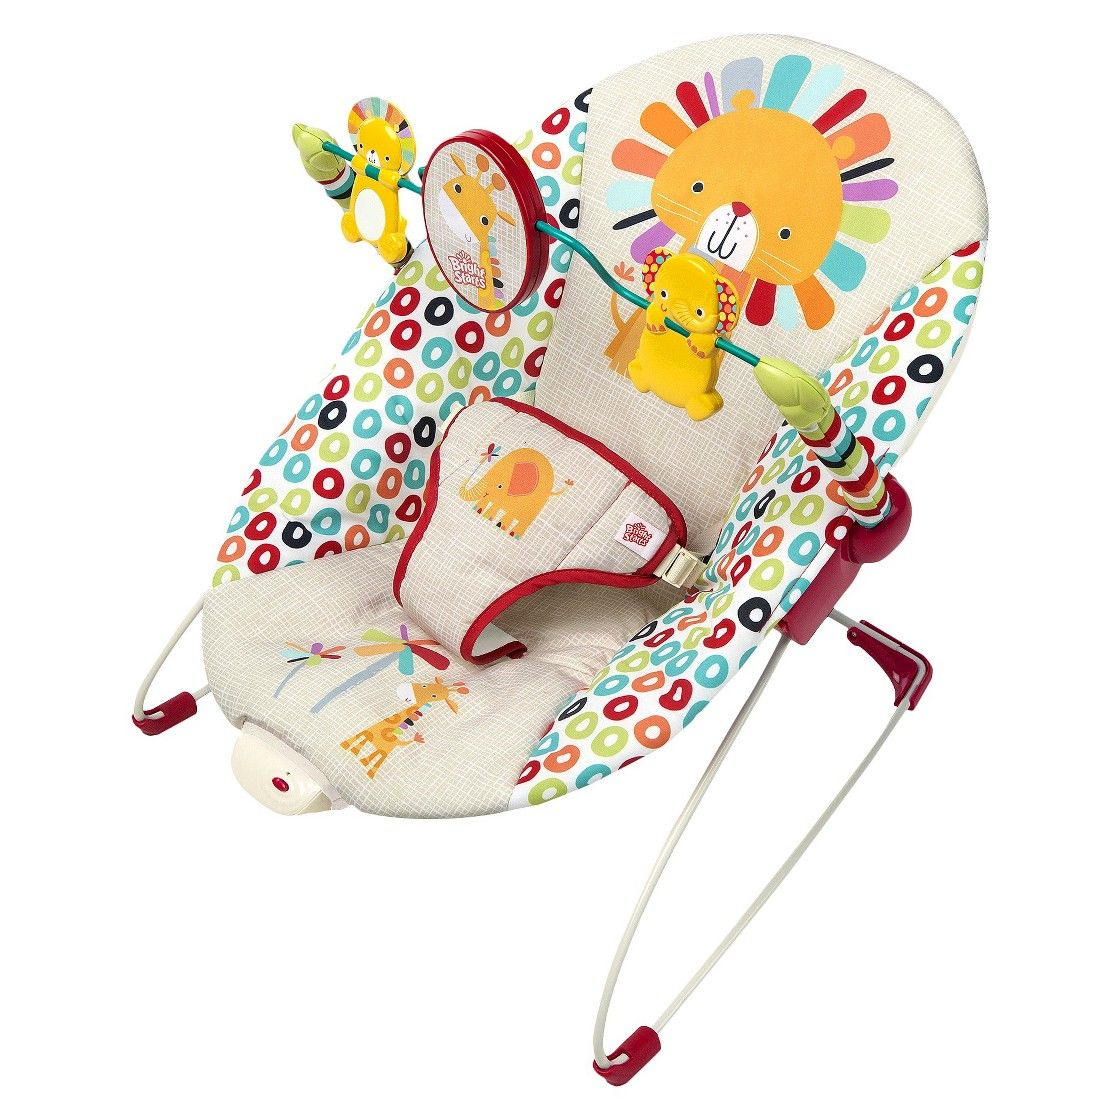 Uncategorized fisher price comfort curve bouncer new free shipping ebay - Bright Starts Bouncer Playful Pinwheels